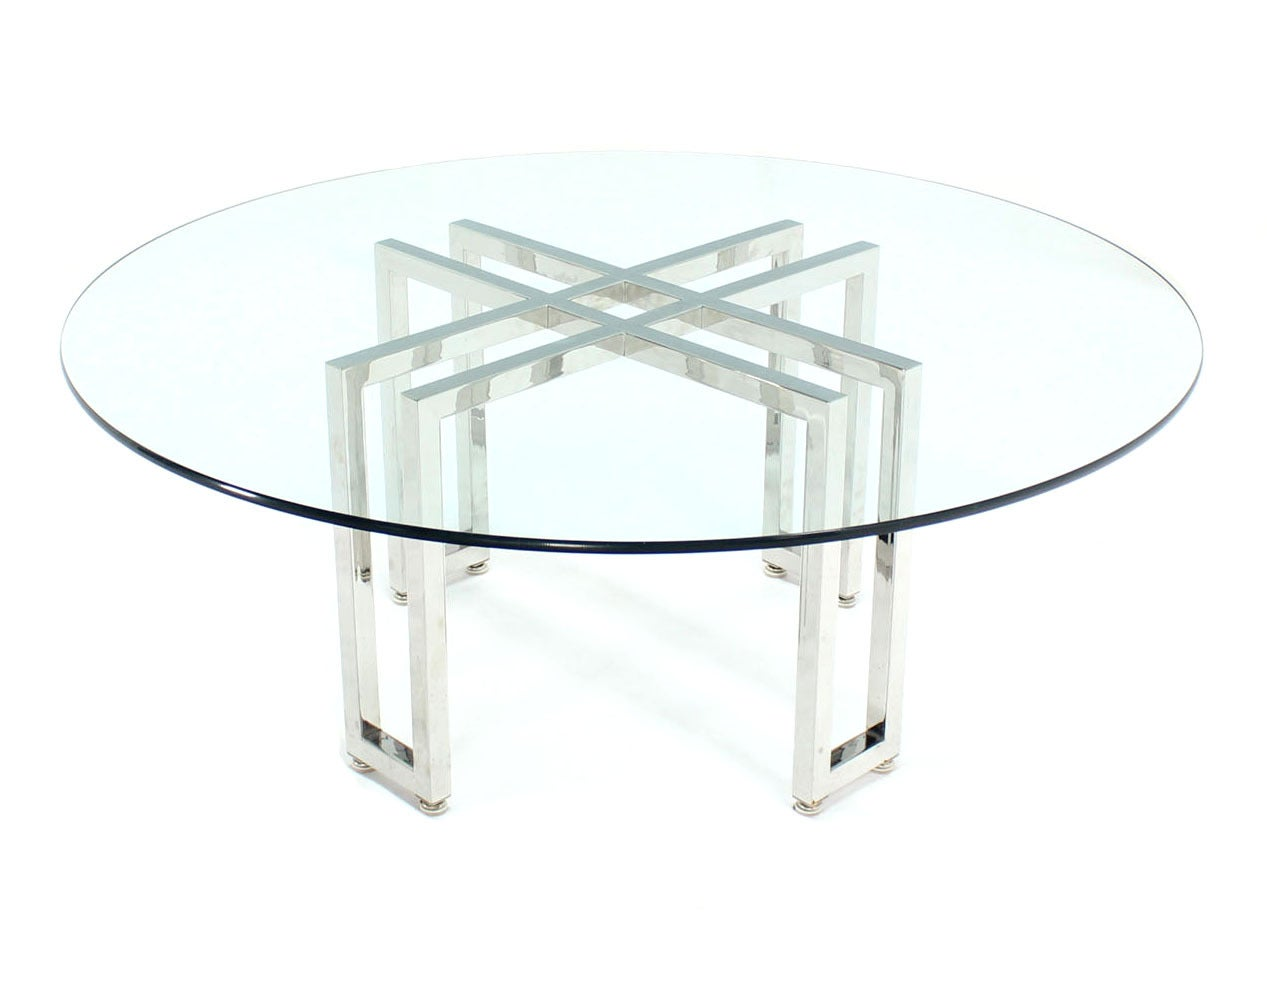 Double Parallel Xbase Round Coffee Table For Sale At 1stdibs